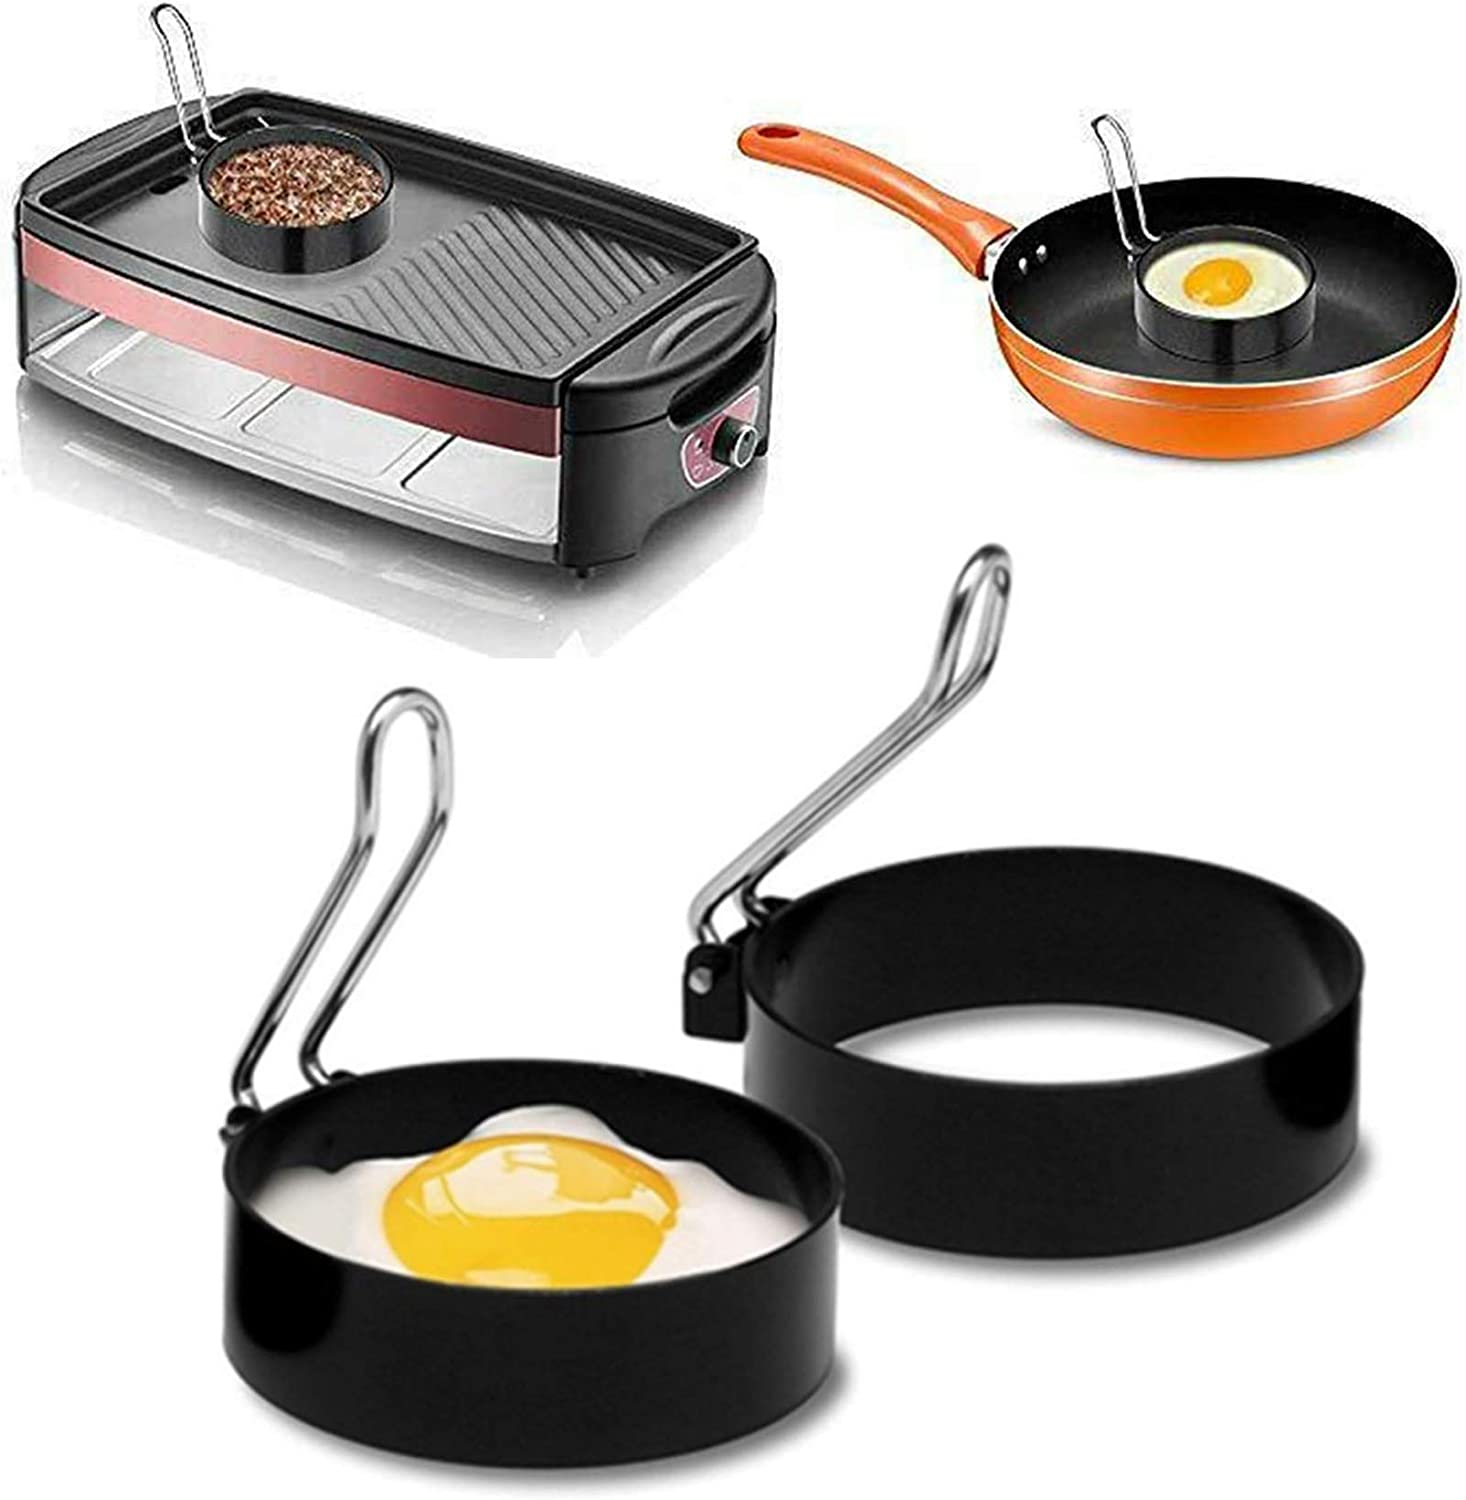 Baodanfirst Egg Ring Set,scrambled egg cooker grill For Cooking baking,Stainless Steel omlette maker single poached egg pan nonstick Round griddle mold,small frying pan Kitchen Tool